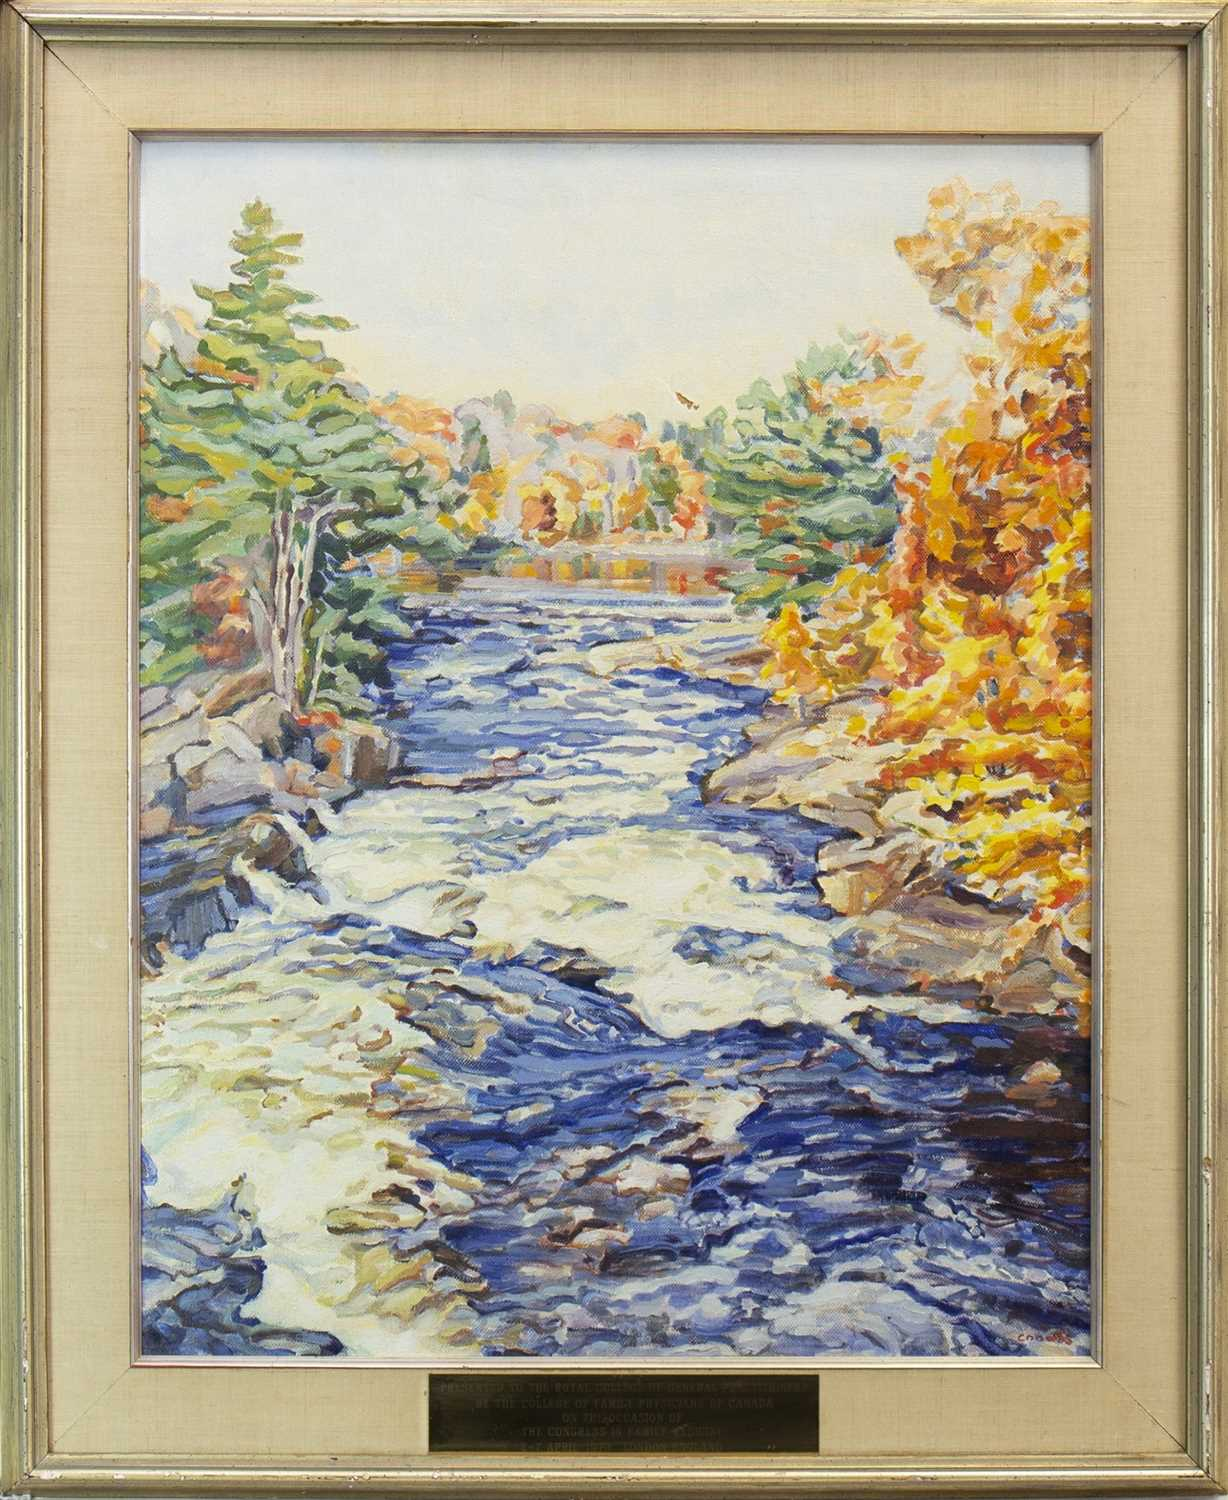 Lot 422-DOWN THE RAPIDS, AN OIL BY EDITH GRACE COOMBS